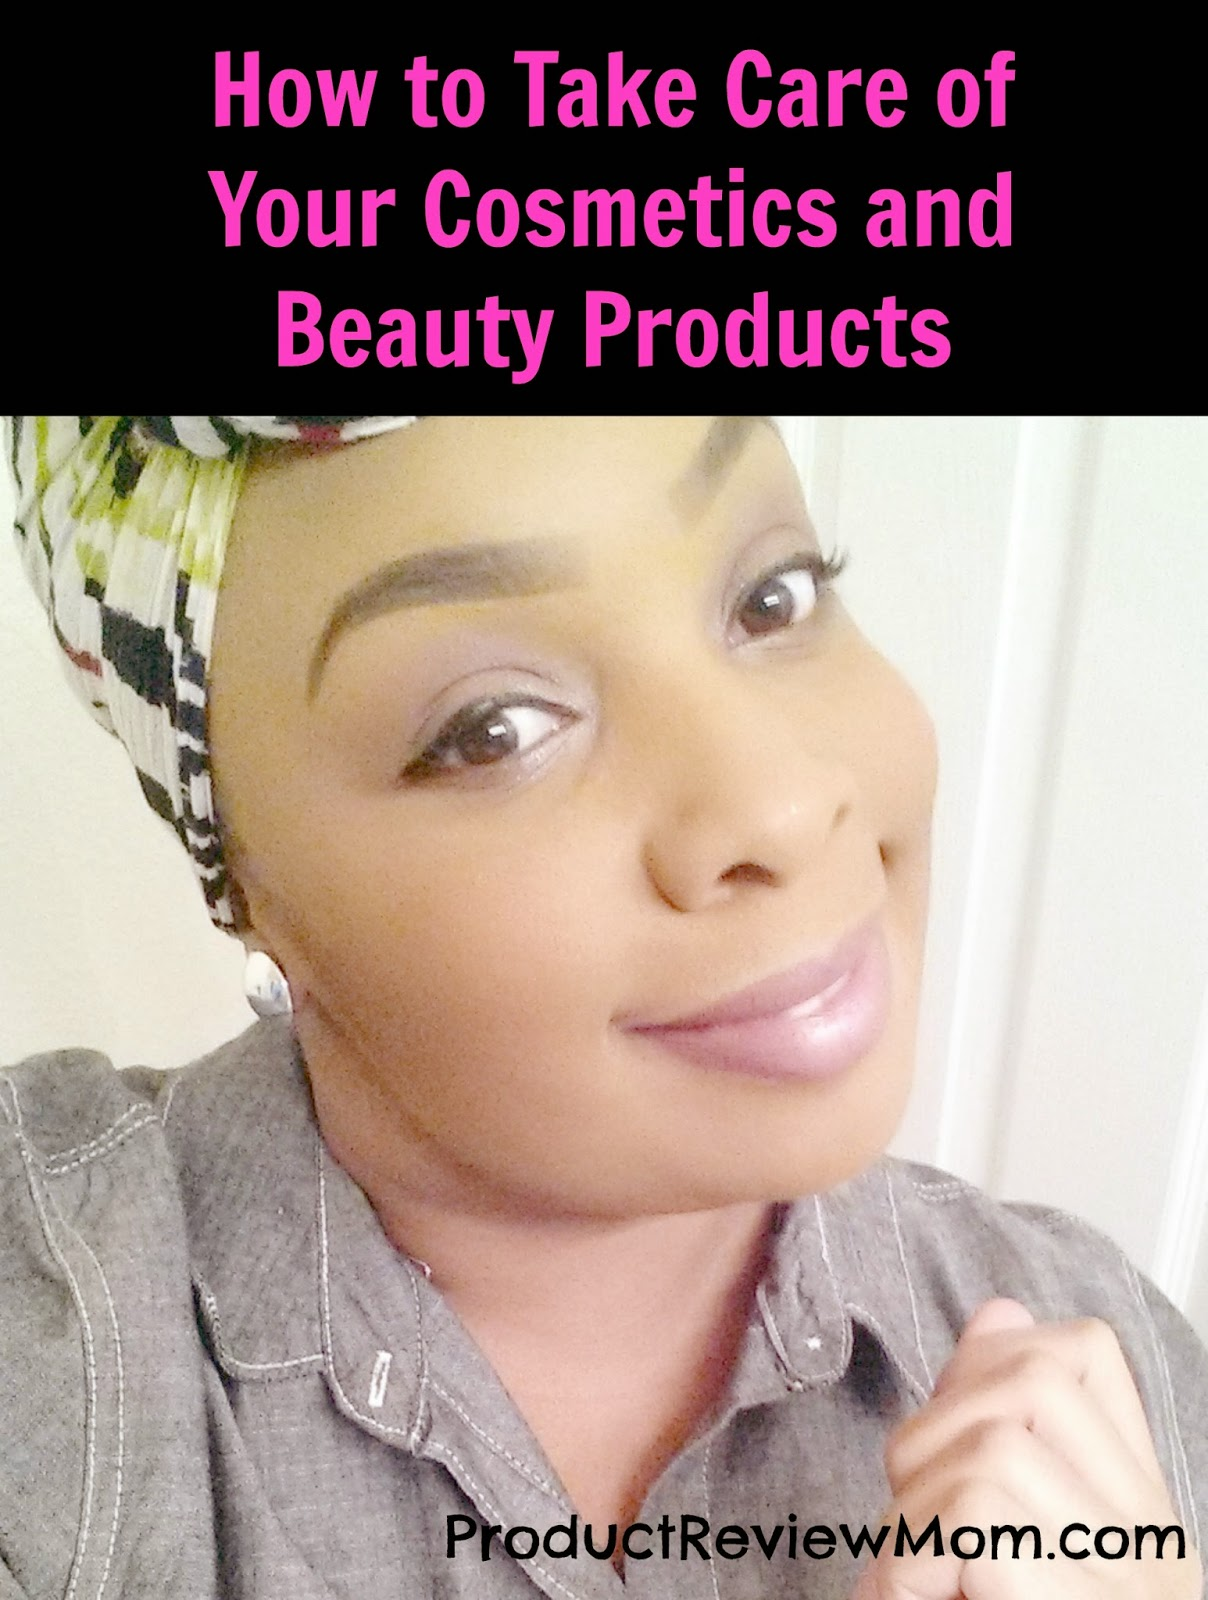 How to Take Care of Your Cosmetics and Beauty Products via ProductReviewMom.com